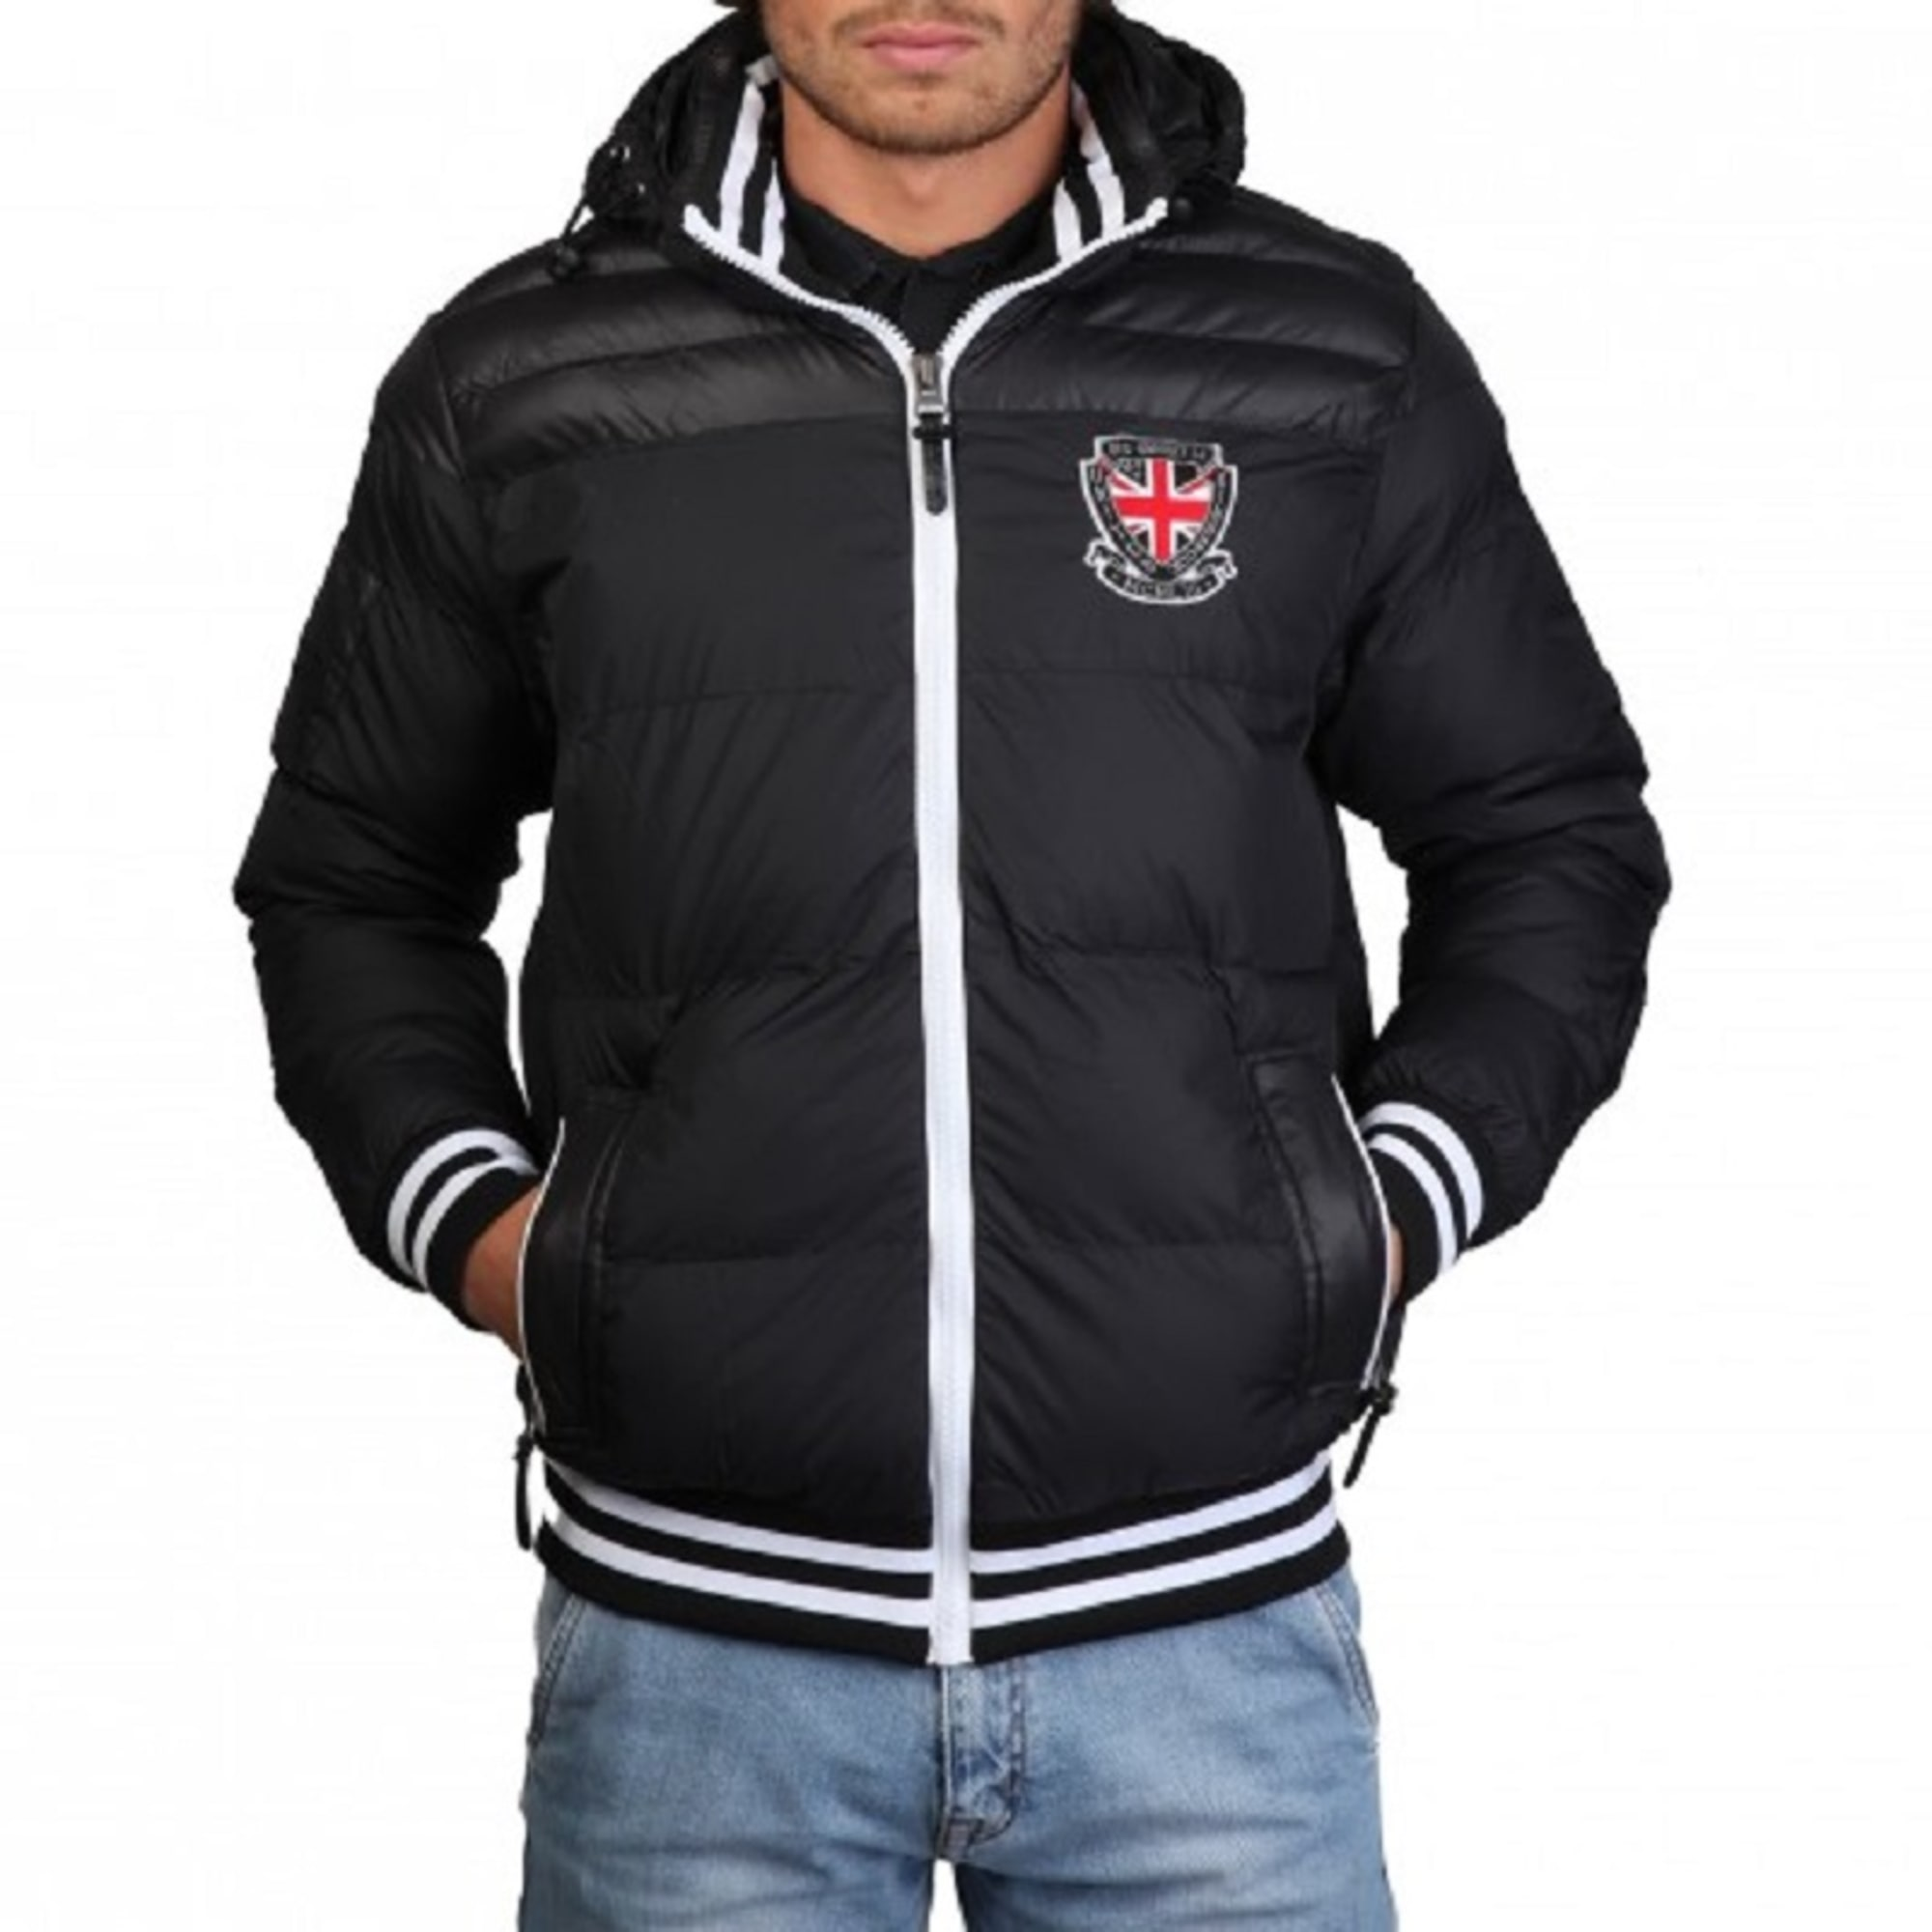 Blouson GEOGRAPHICAL NORWAY Noir